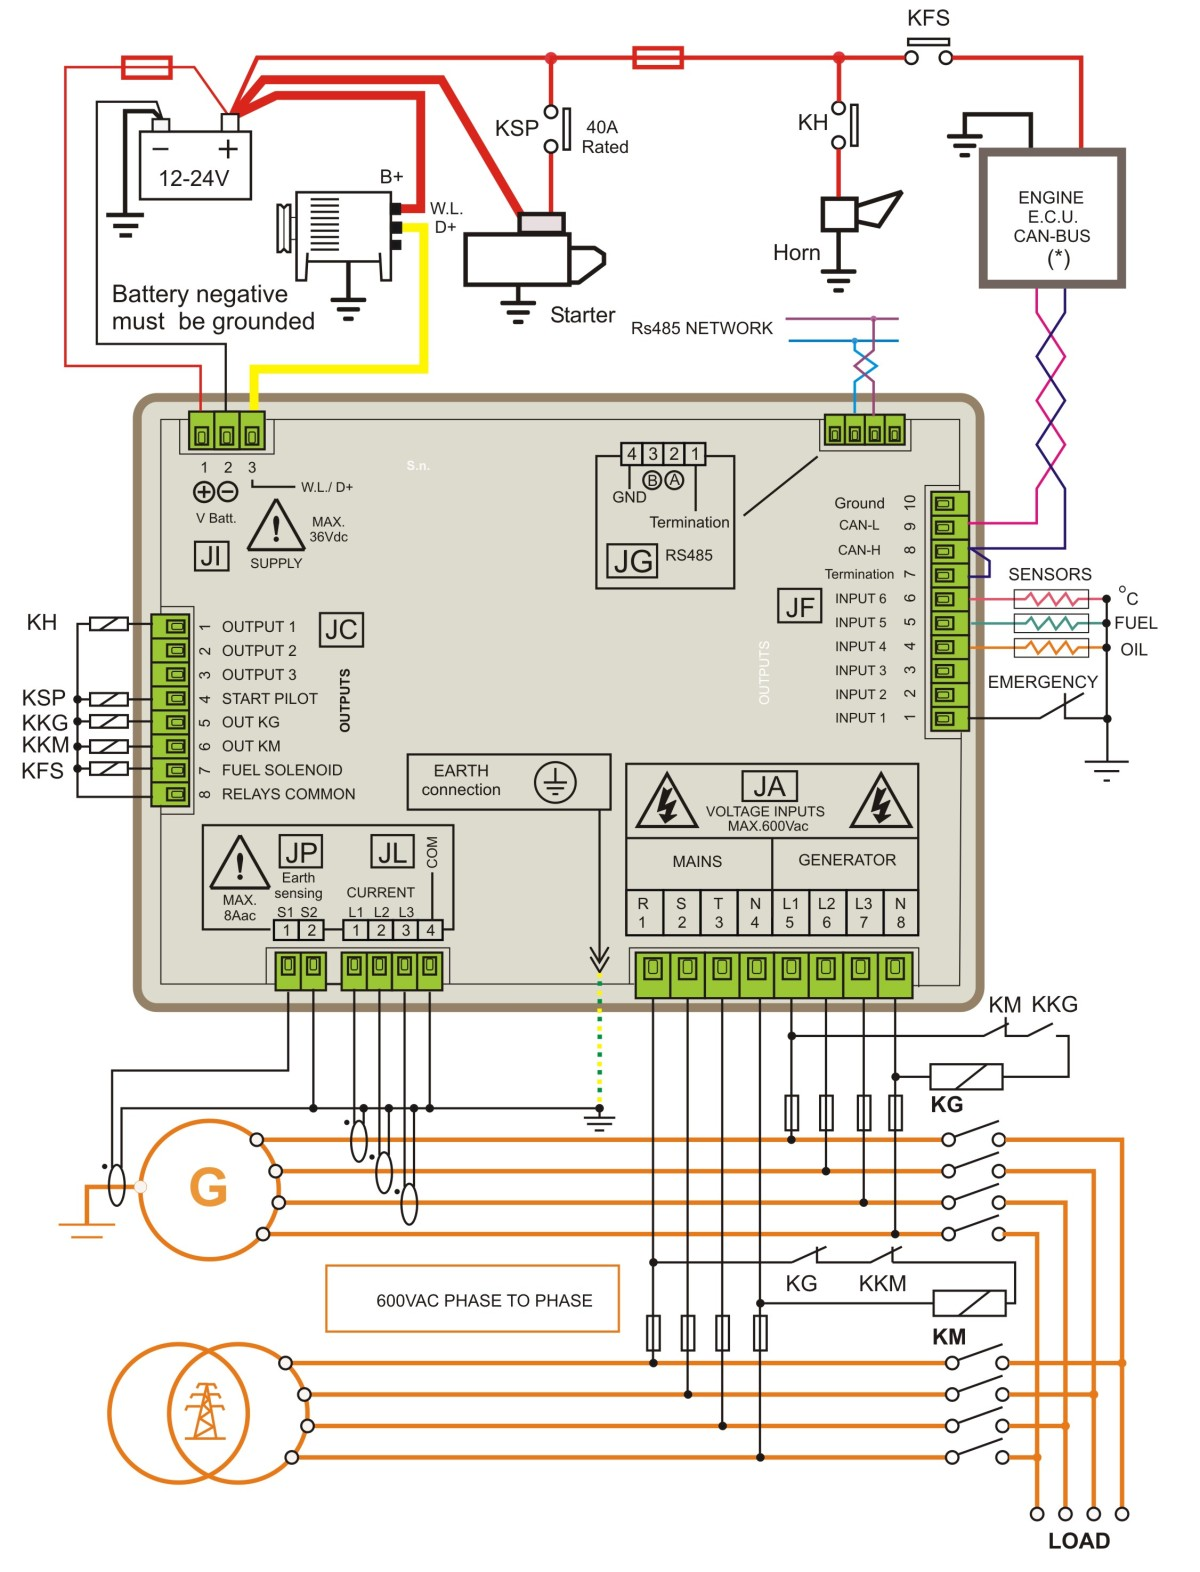 wiring diagram for genset wiring image wiring diagram diesel generator control panel wiring diagram genset controller